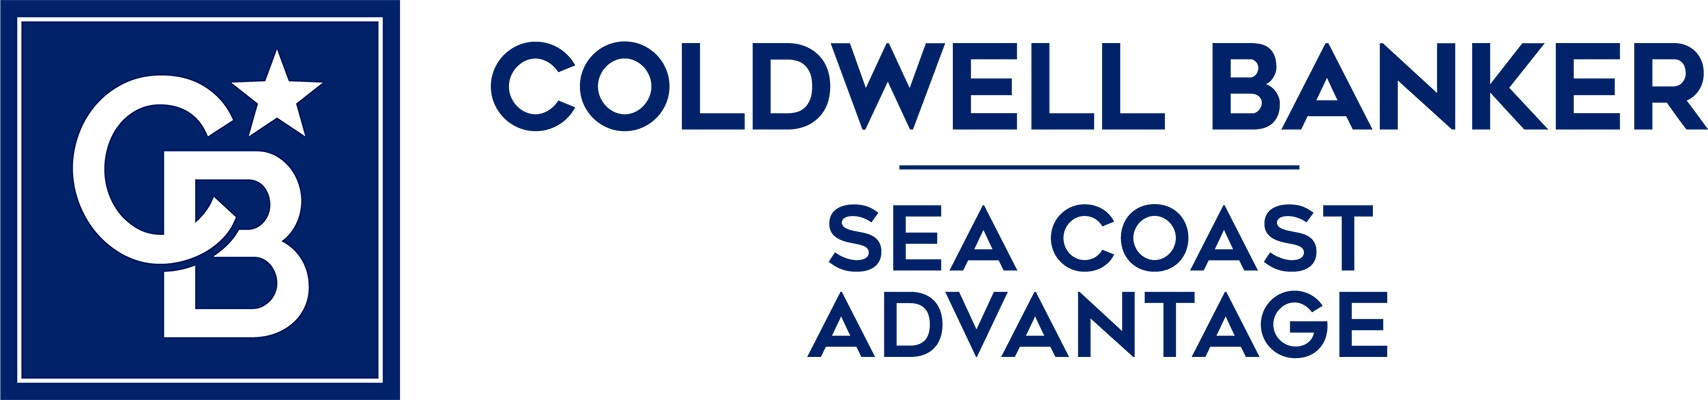 Jennifer Getsinger - Coldwell Banker Sea Coast Advantage Realty